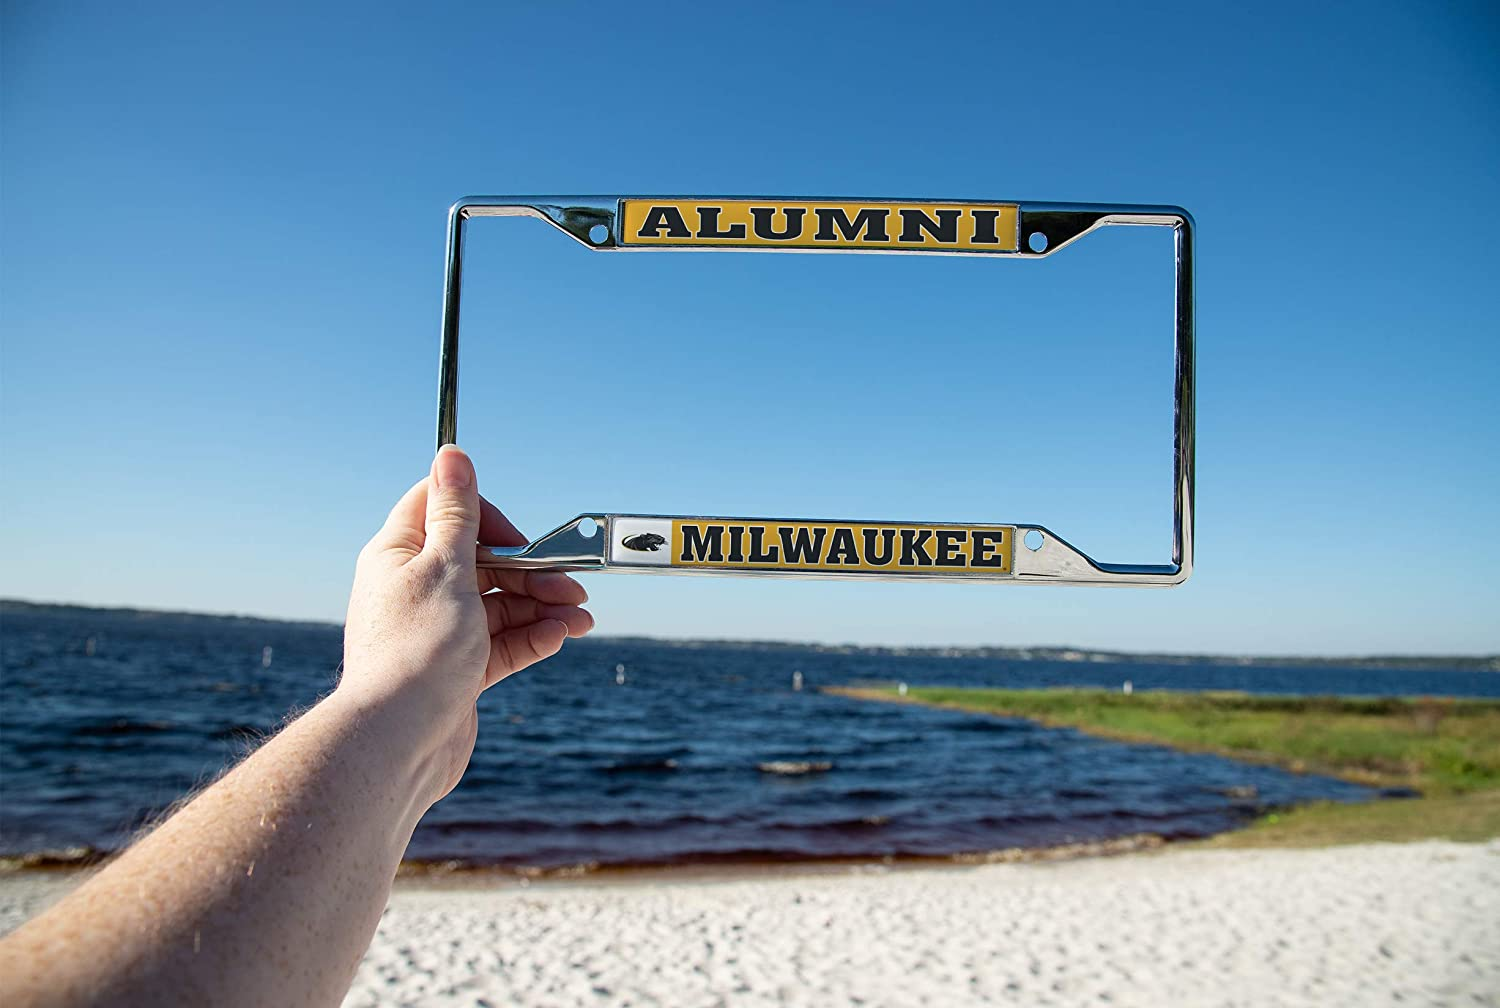 Alumni Desert Cactus University of Wisconsin Milwaukee UWM Panthers NCAA Metal License Plate Frame for Front Back of Car Officially Licensed